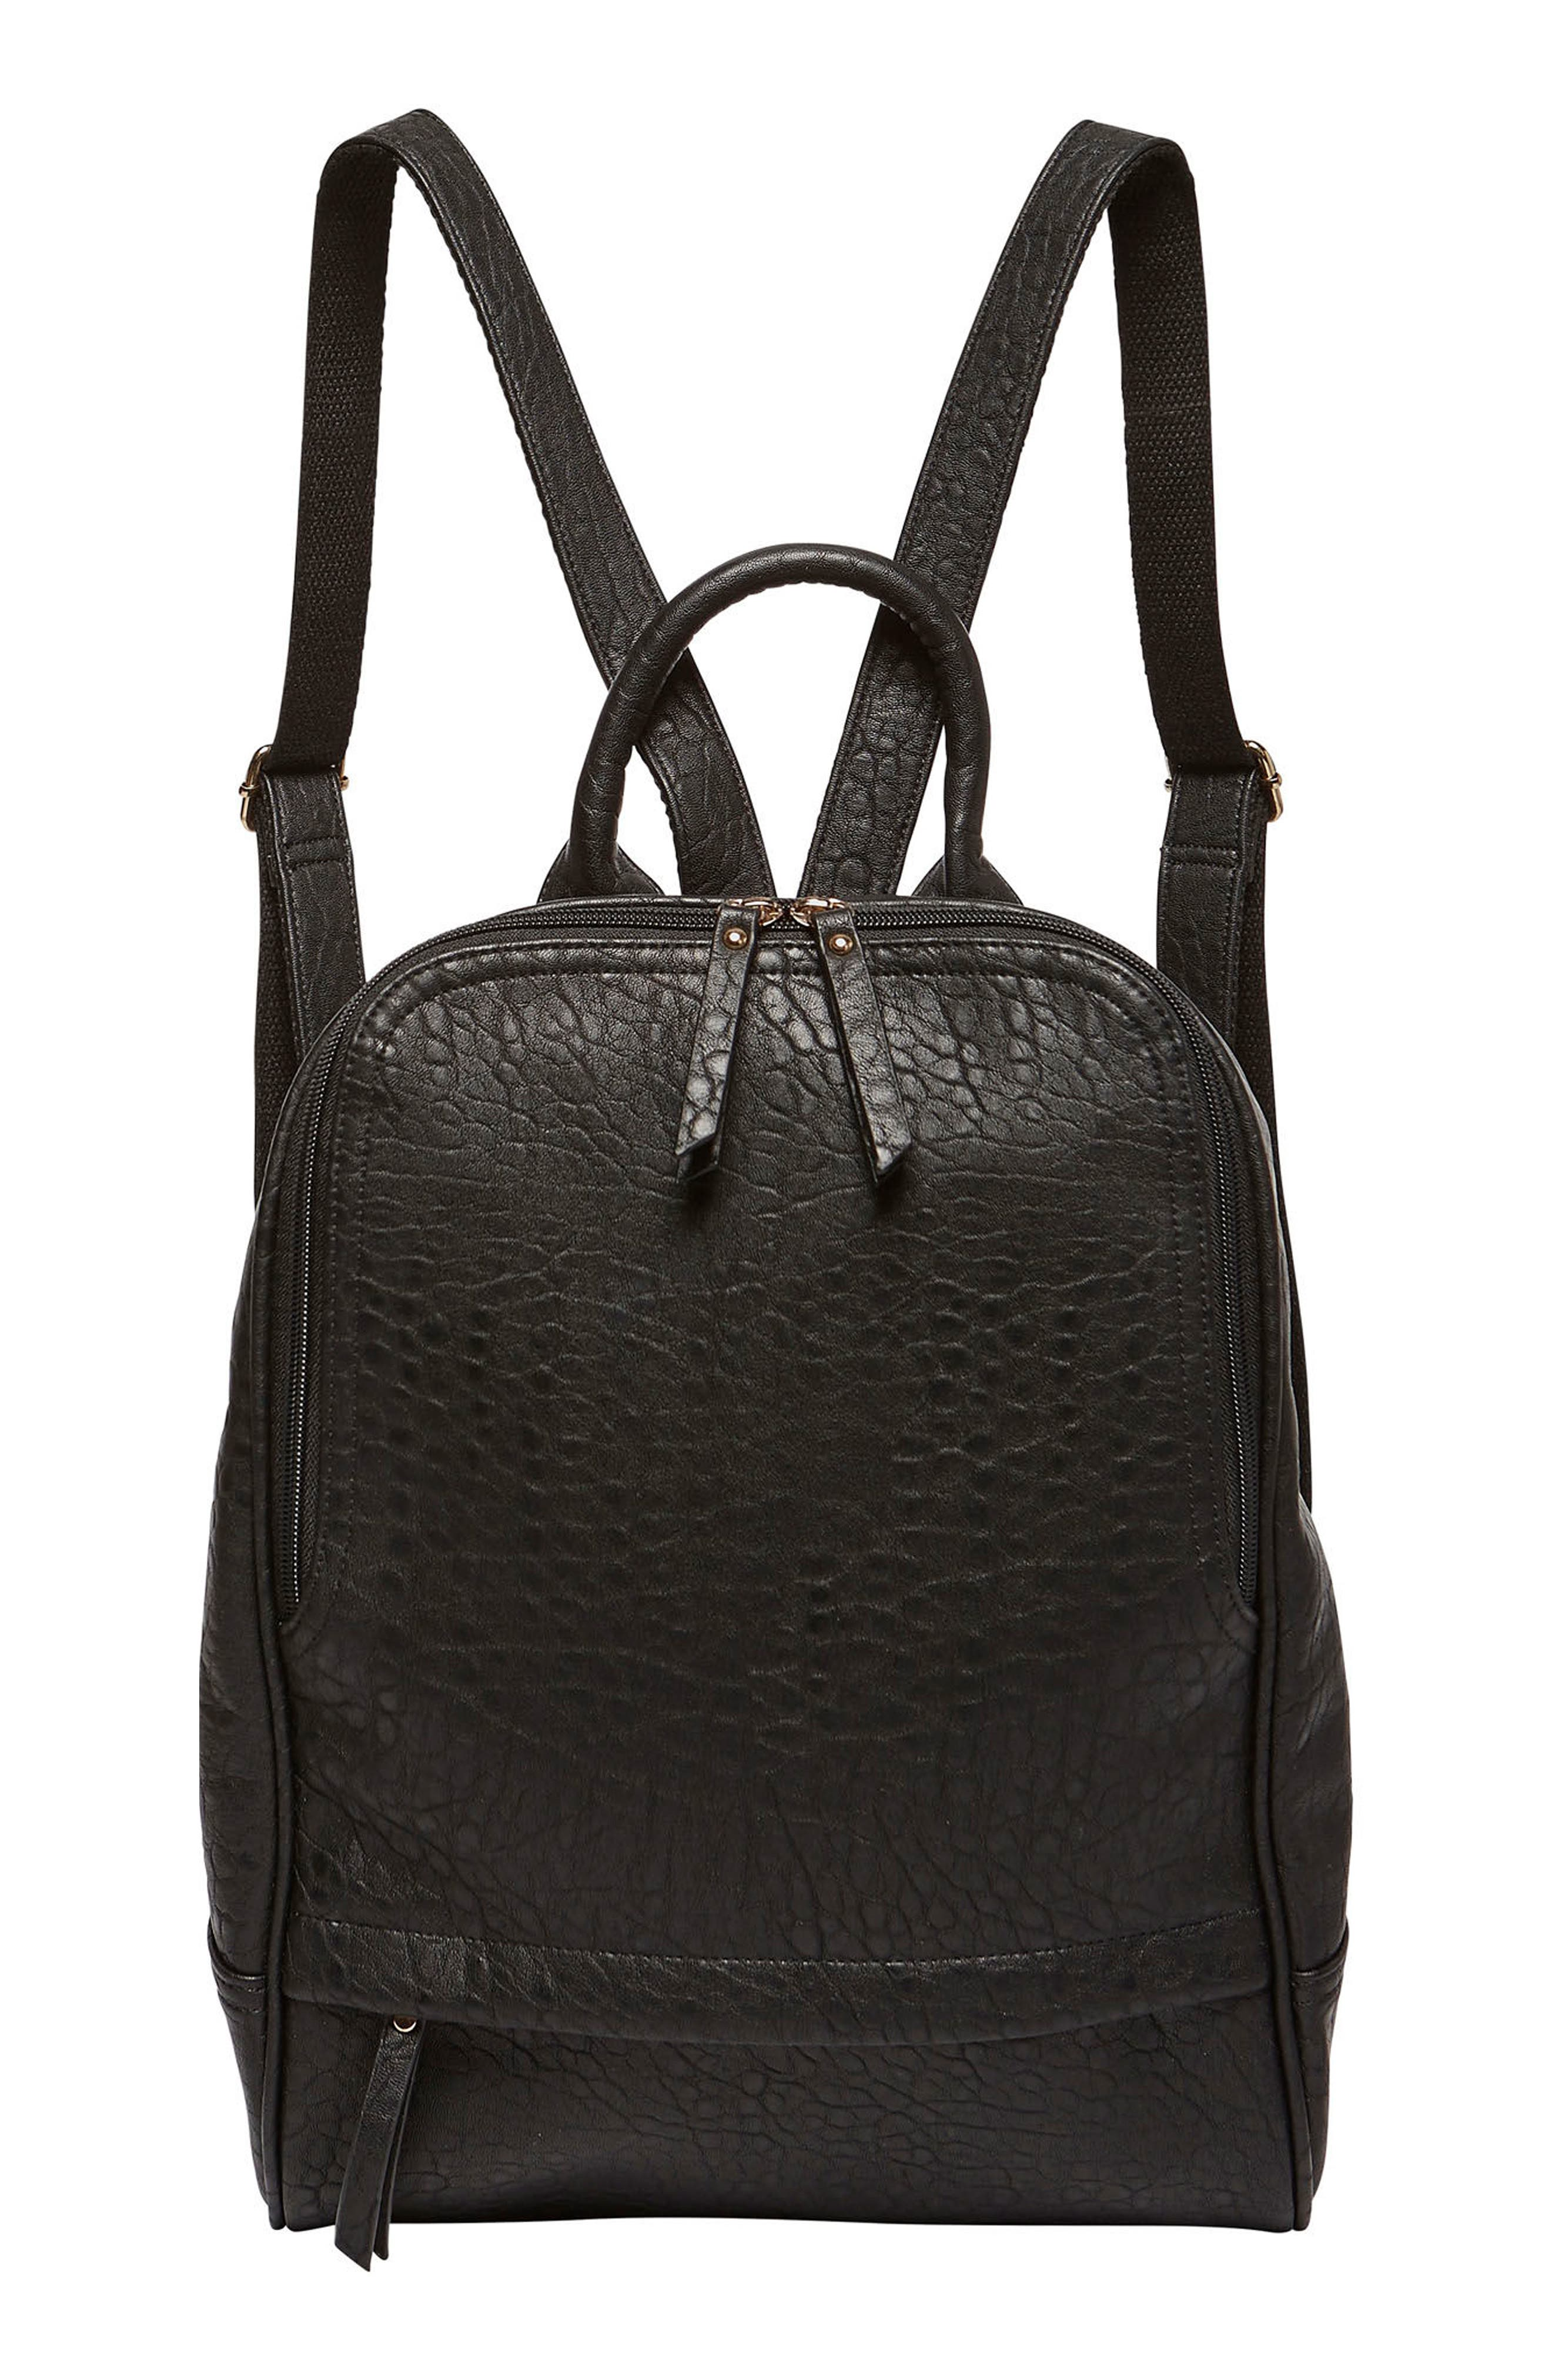 My Way Vegan Leather Backpack,                         Main,                         color, Black